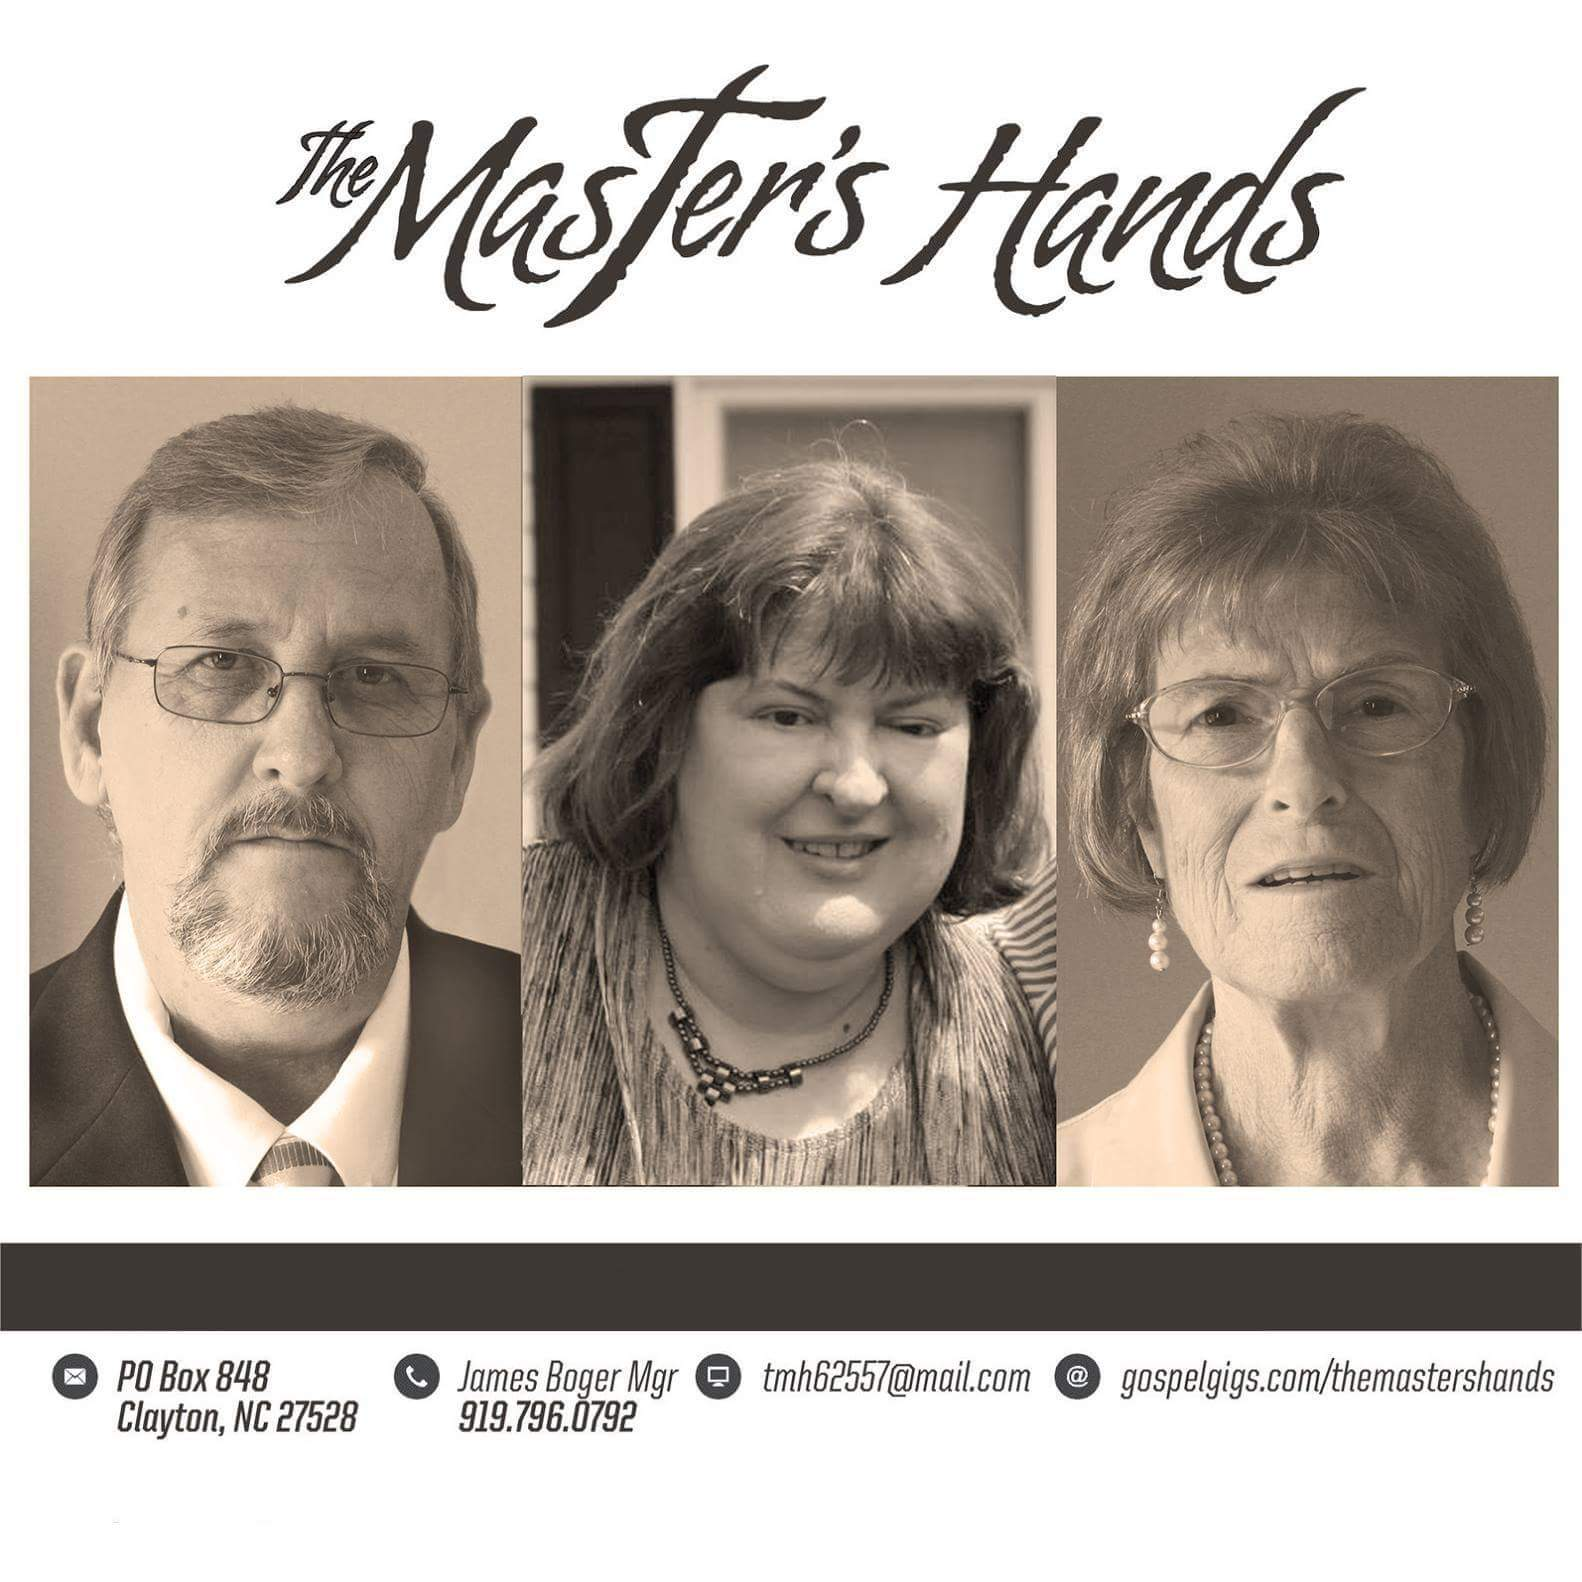 The Masters Hands Ministries